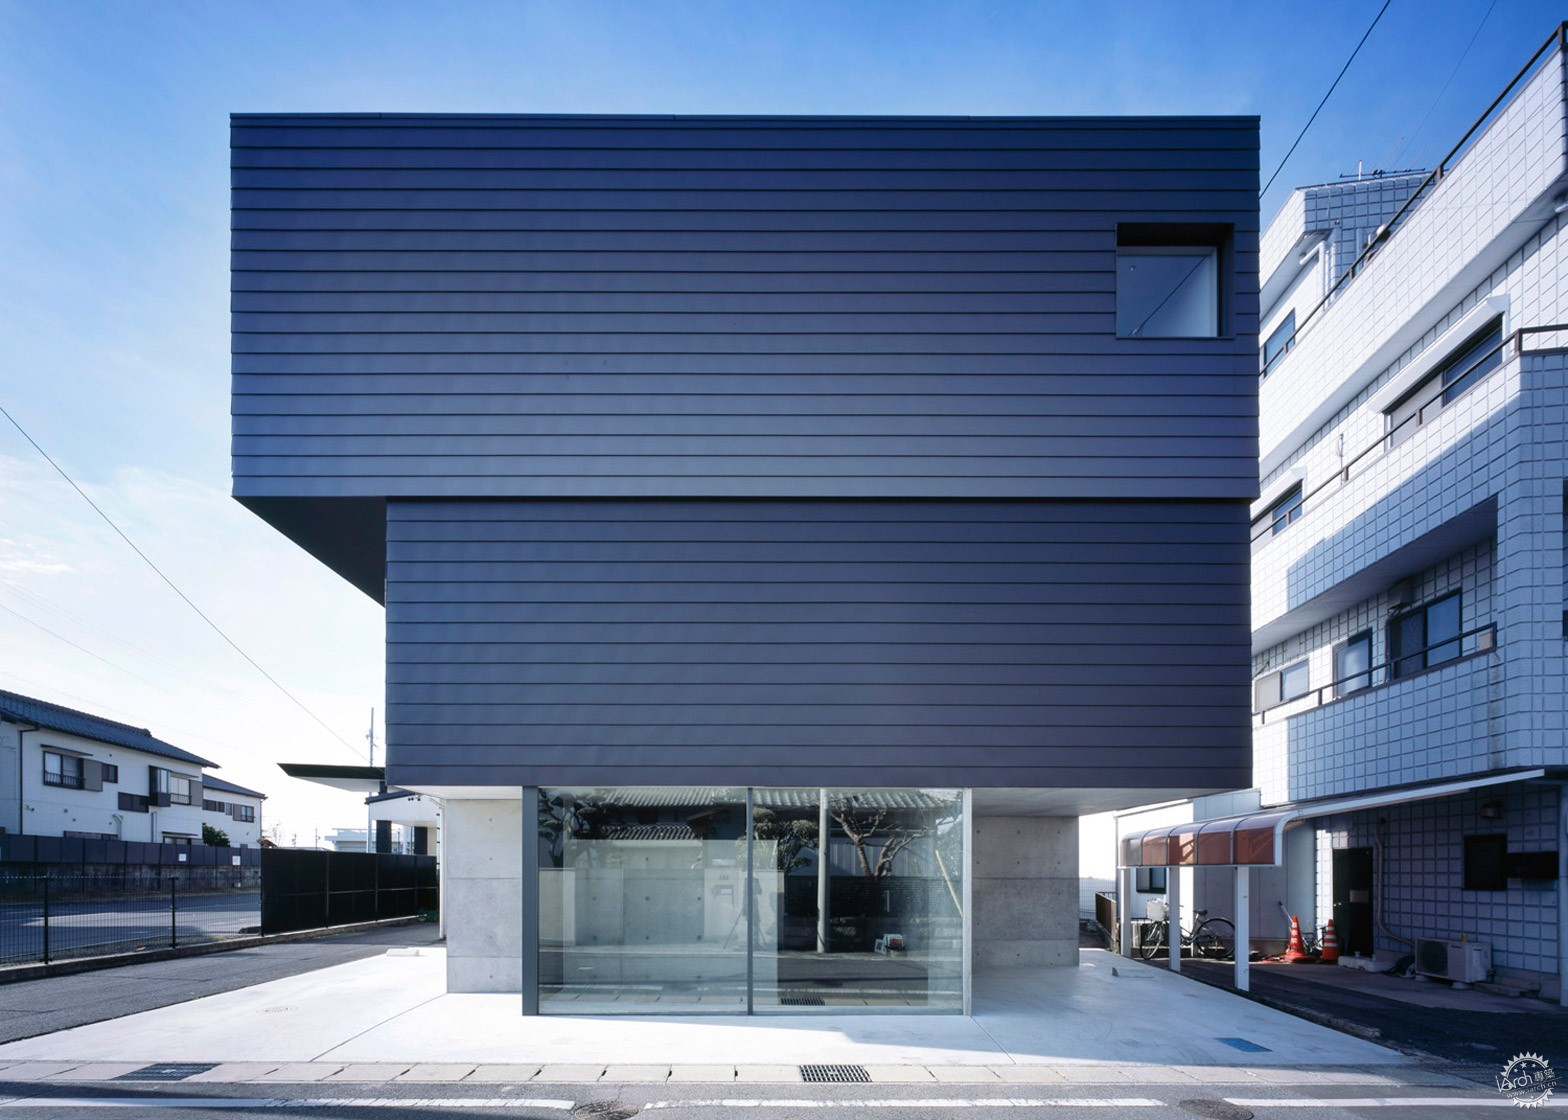 日本Gaze住宅/ APOLLO Architects & Associates第4张图片